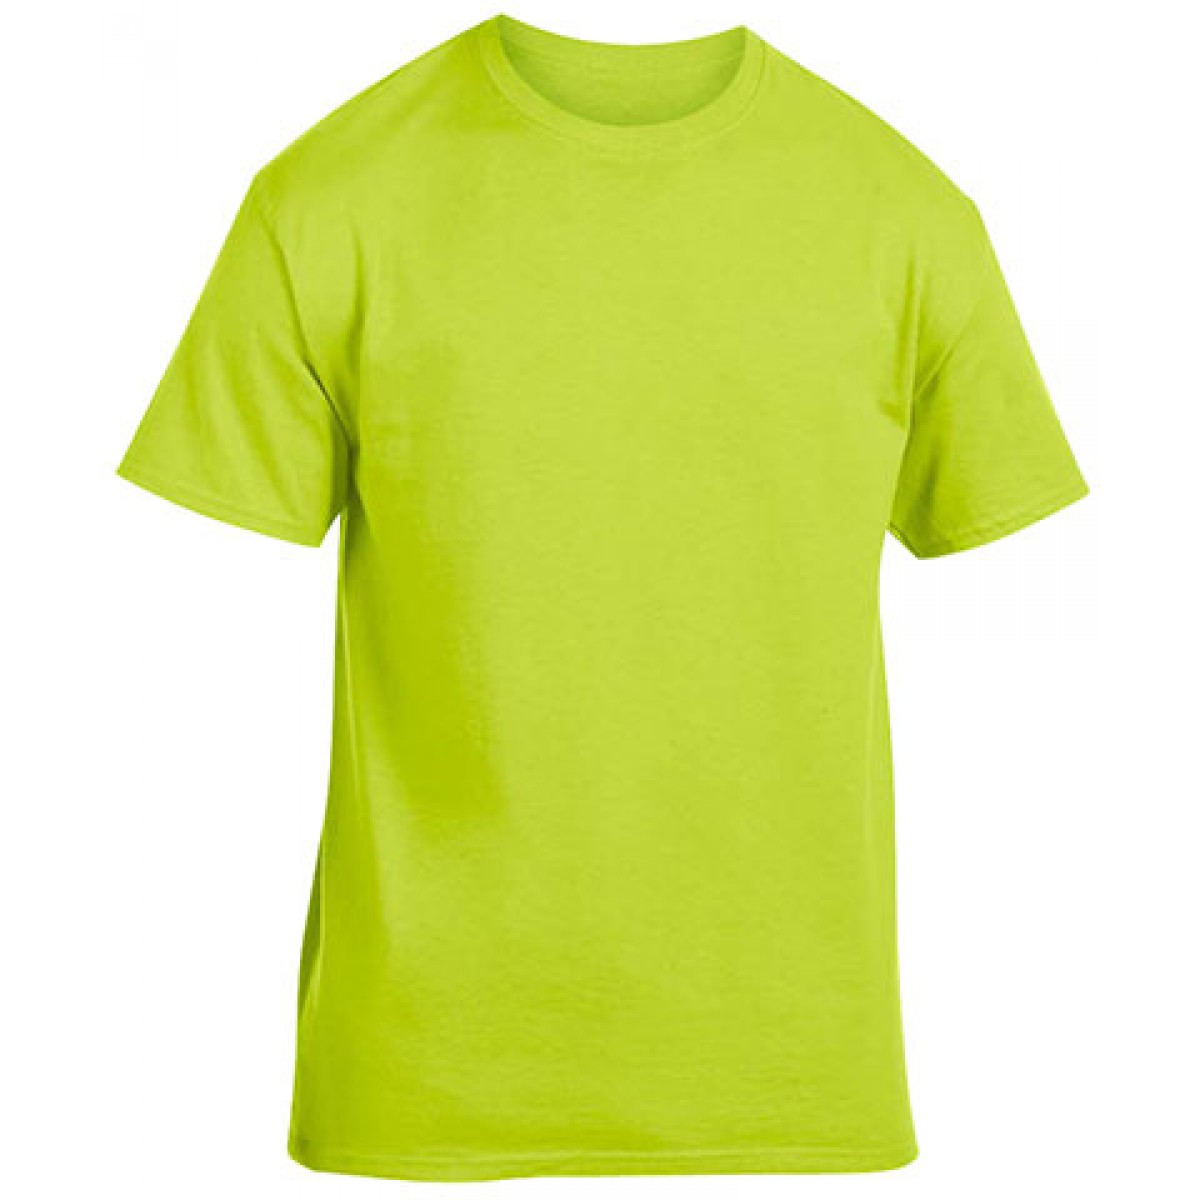 Heavy Cotton Activewear T-Shirt-Safety Green-3XL